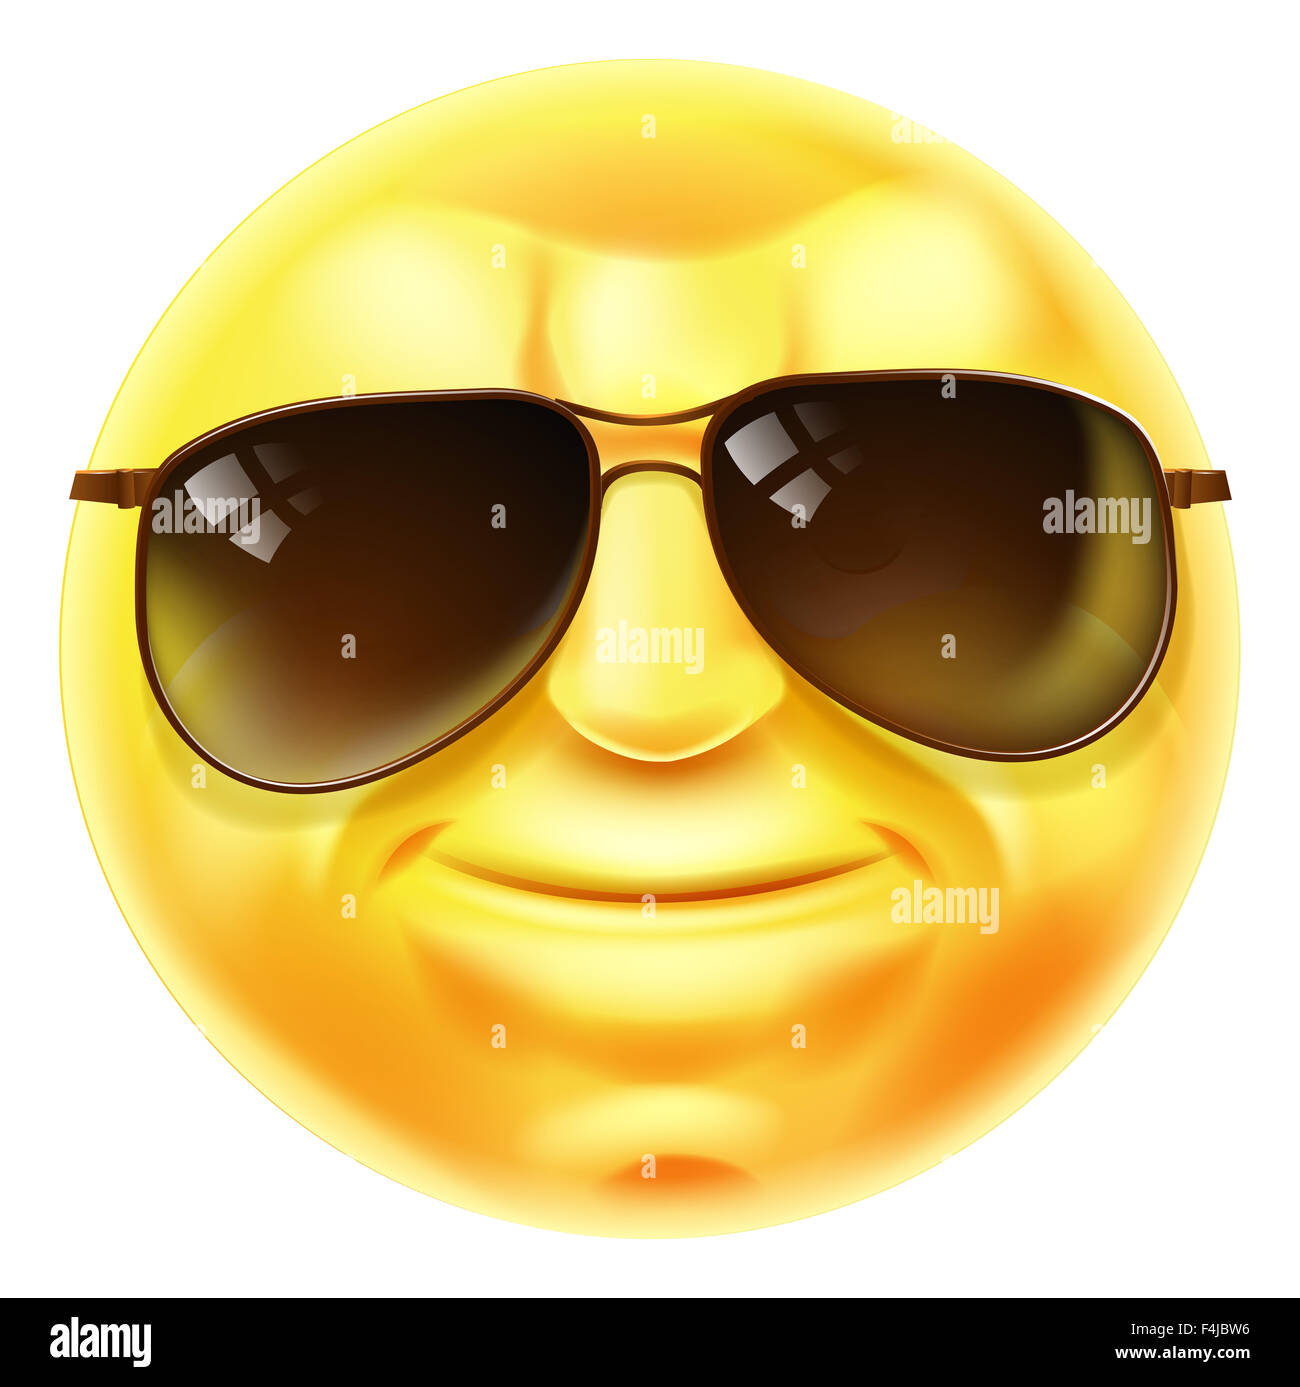 a cool looking emoji emoticon smiley face character with sunglasses on